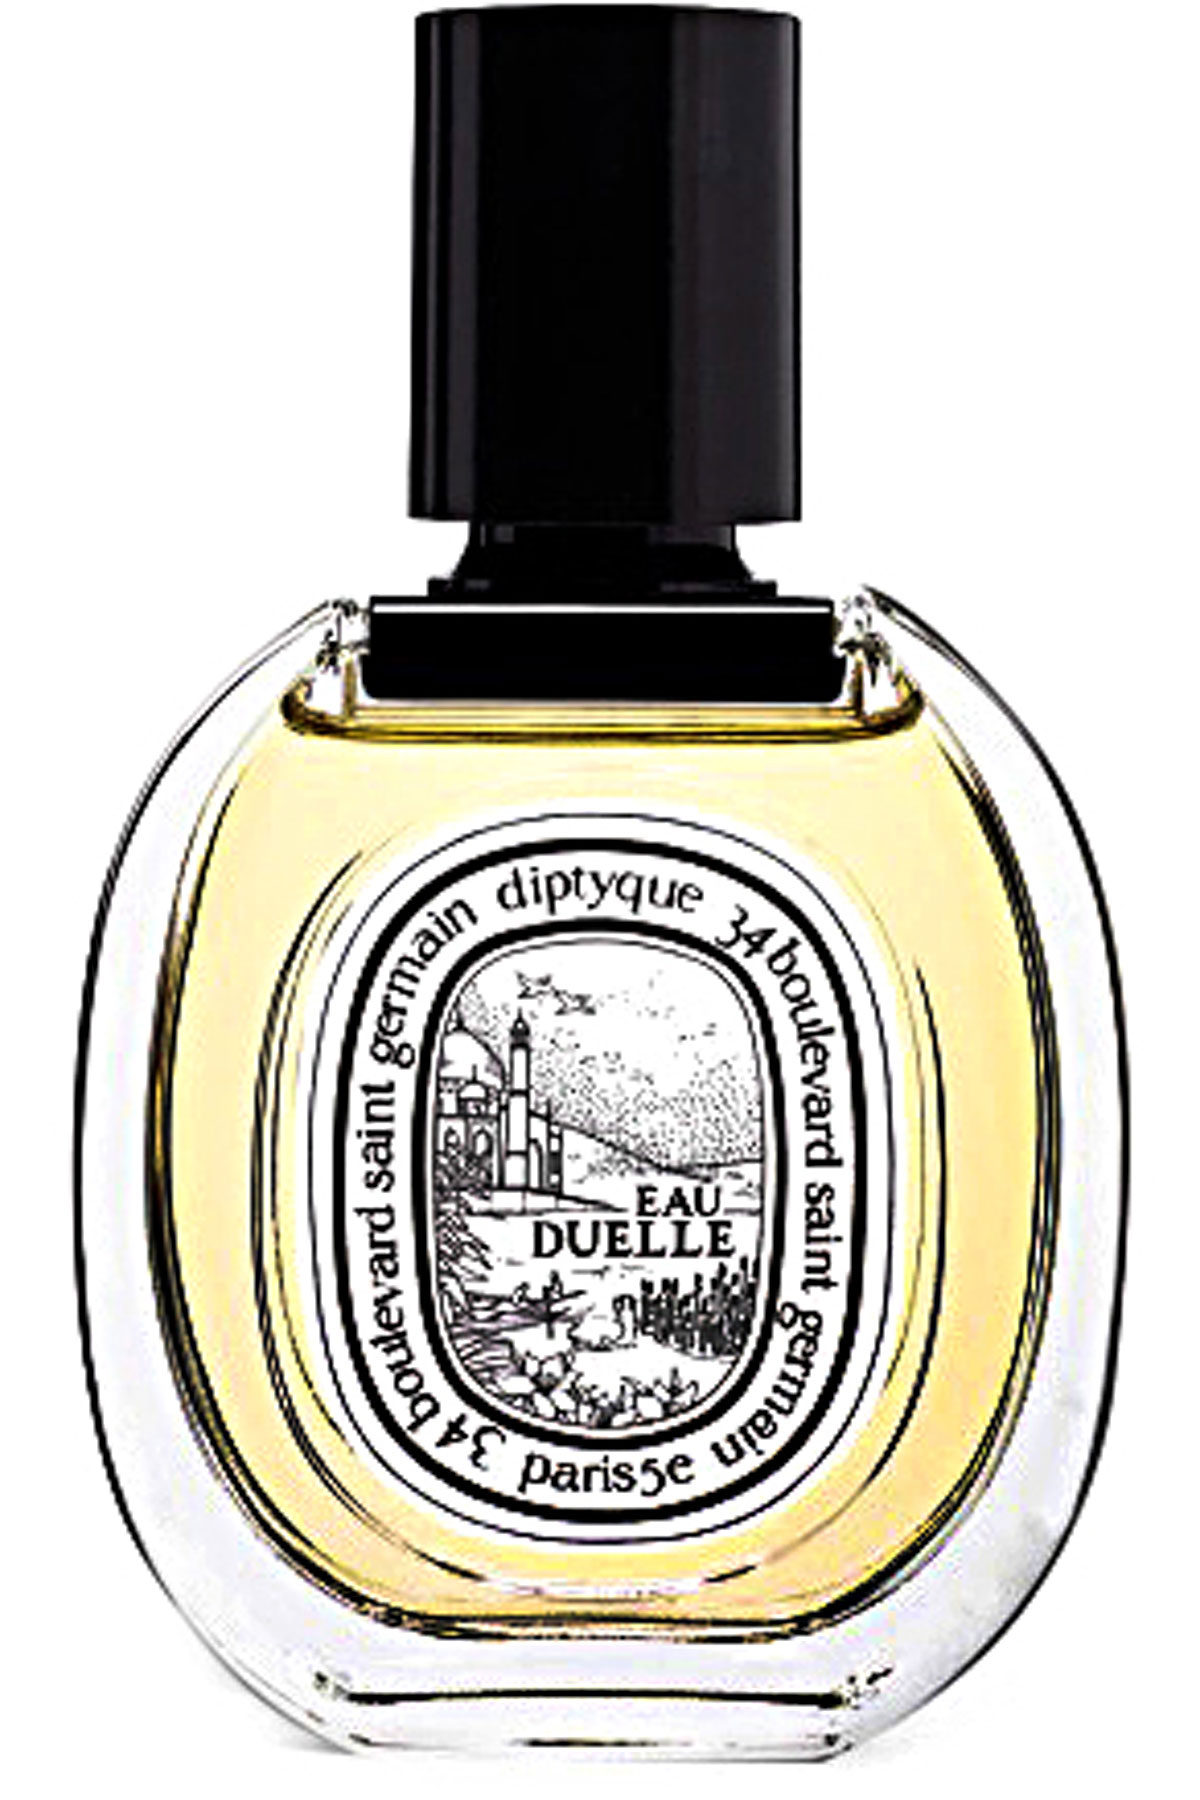 Diptyque Fragrances for Men, Eau Duelle - Eau De Toilette - 50 Ml, 2019, 50 ml